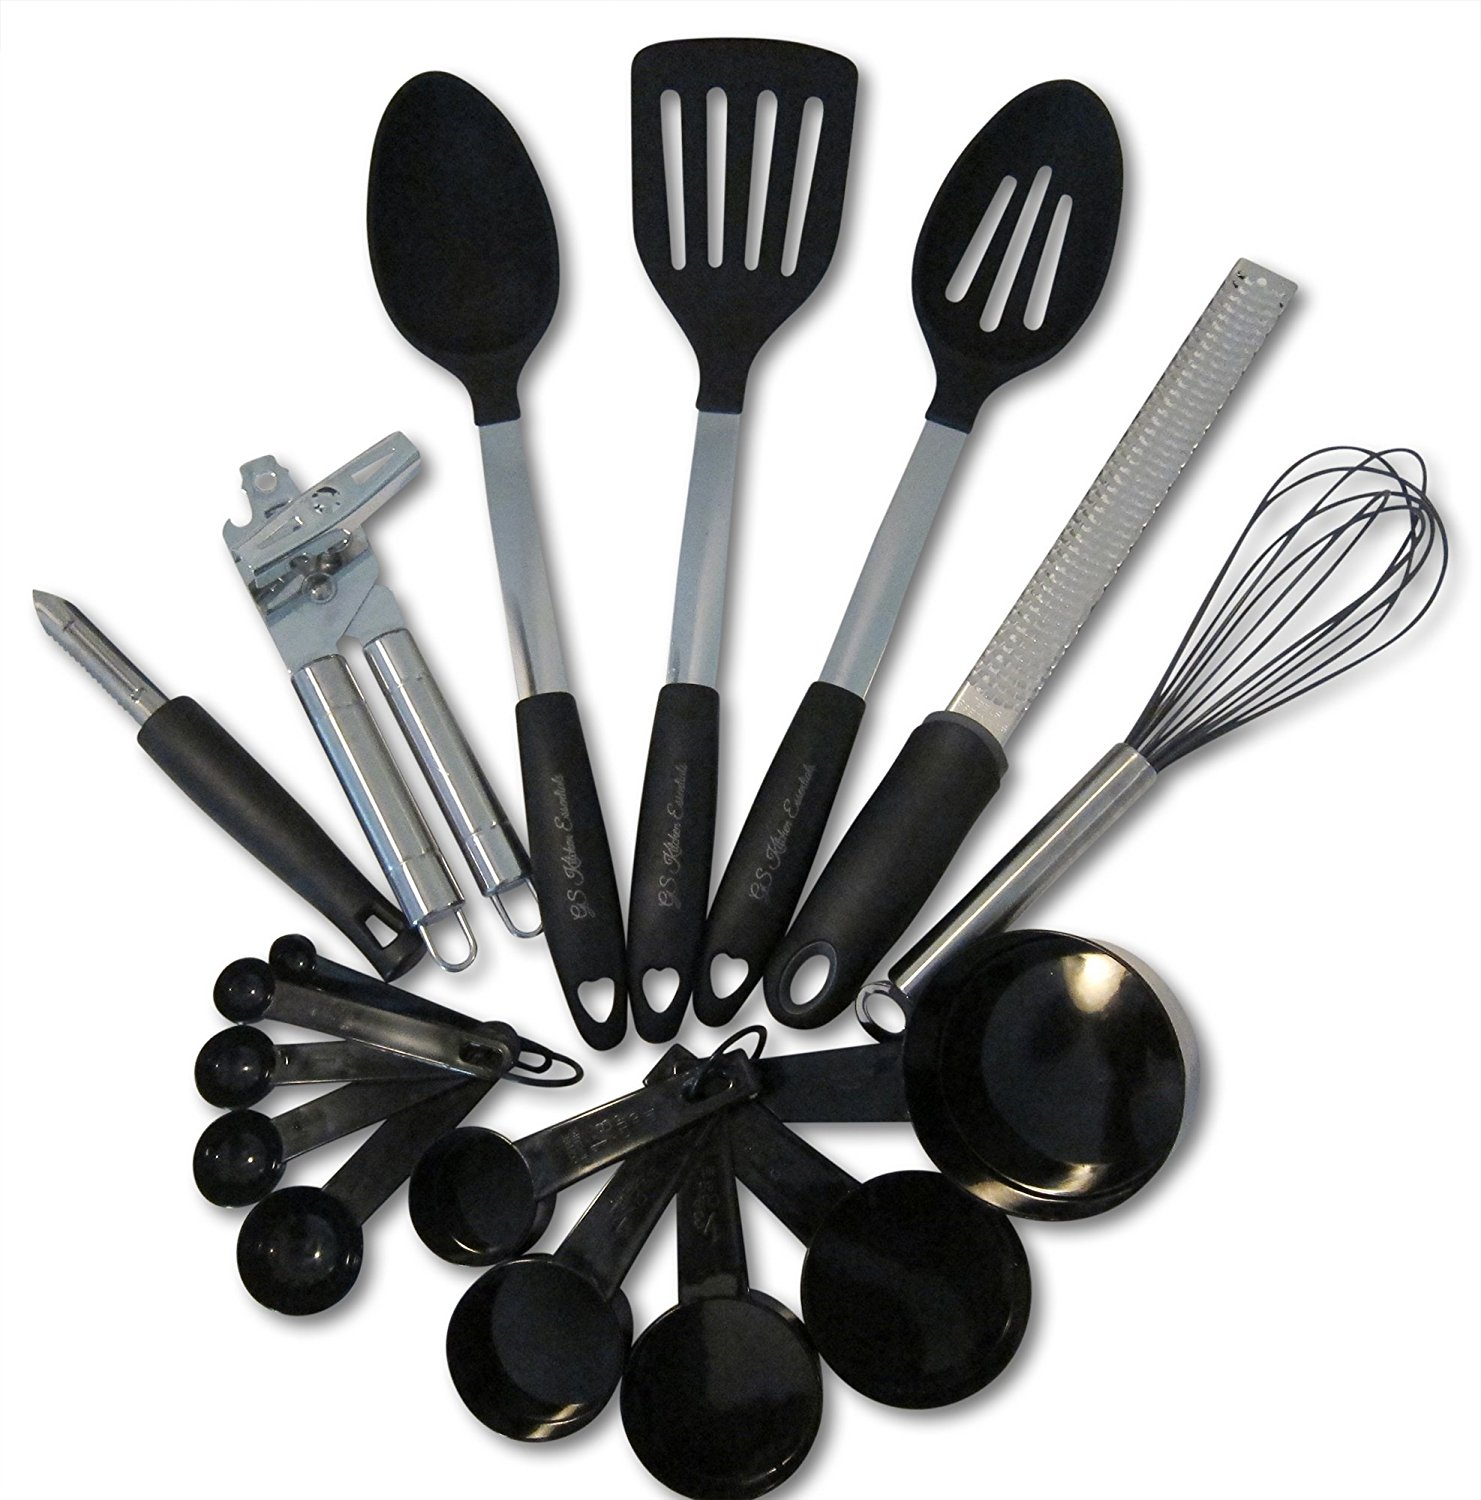 Kitchen Utensils and Gadgets 17 piece Silicone and Stainless Steel Cooking Tools Set - Cooks Essenti